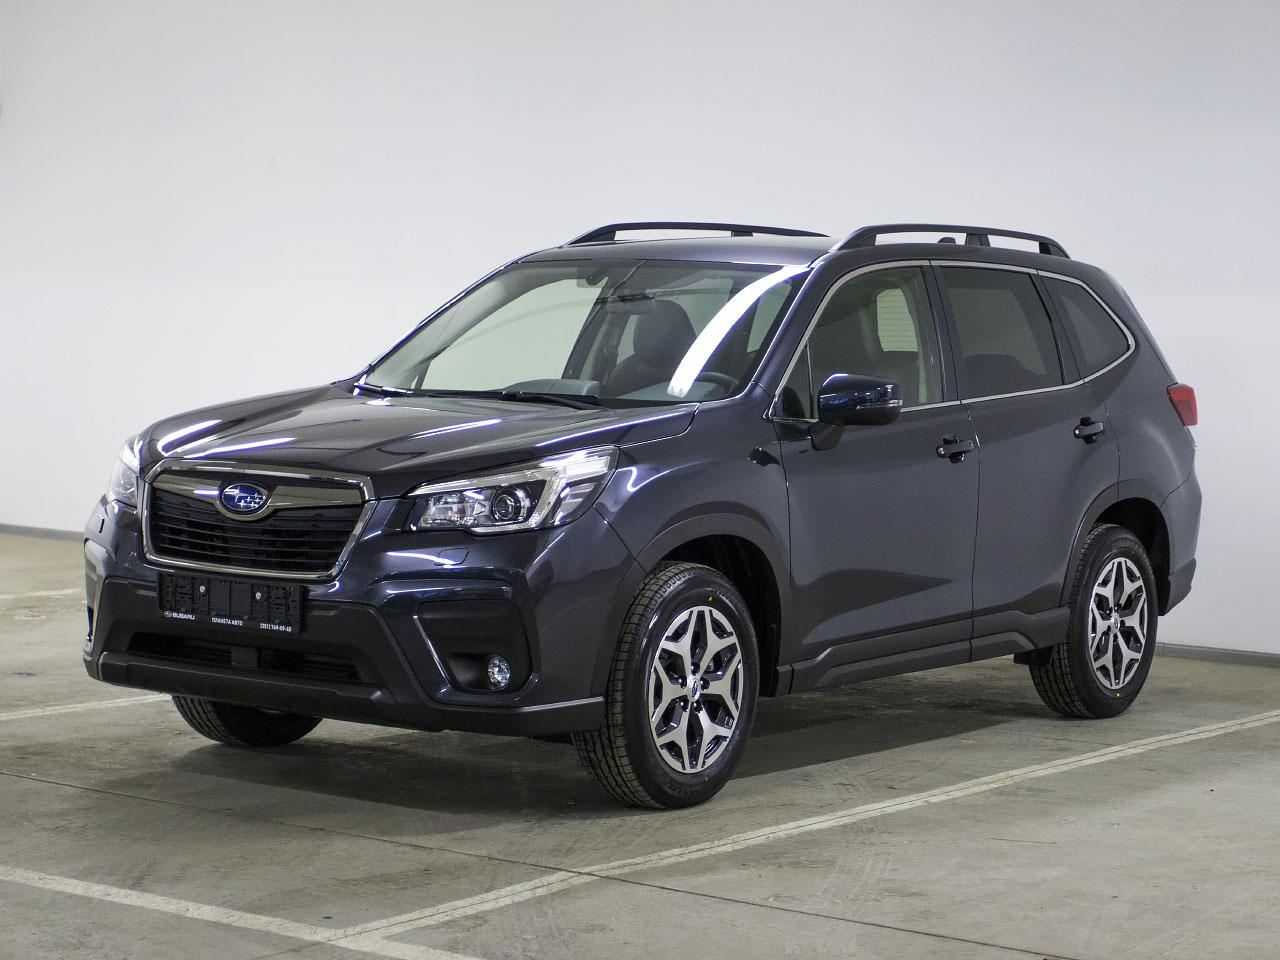 Subaru Forester New 2.0i-L AWD CVT (150 л. с.) Elegance